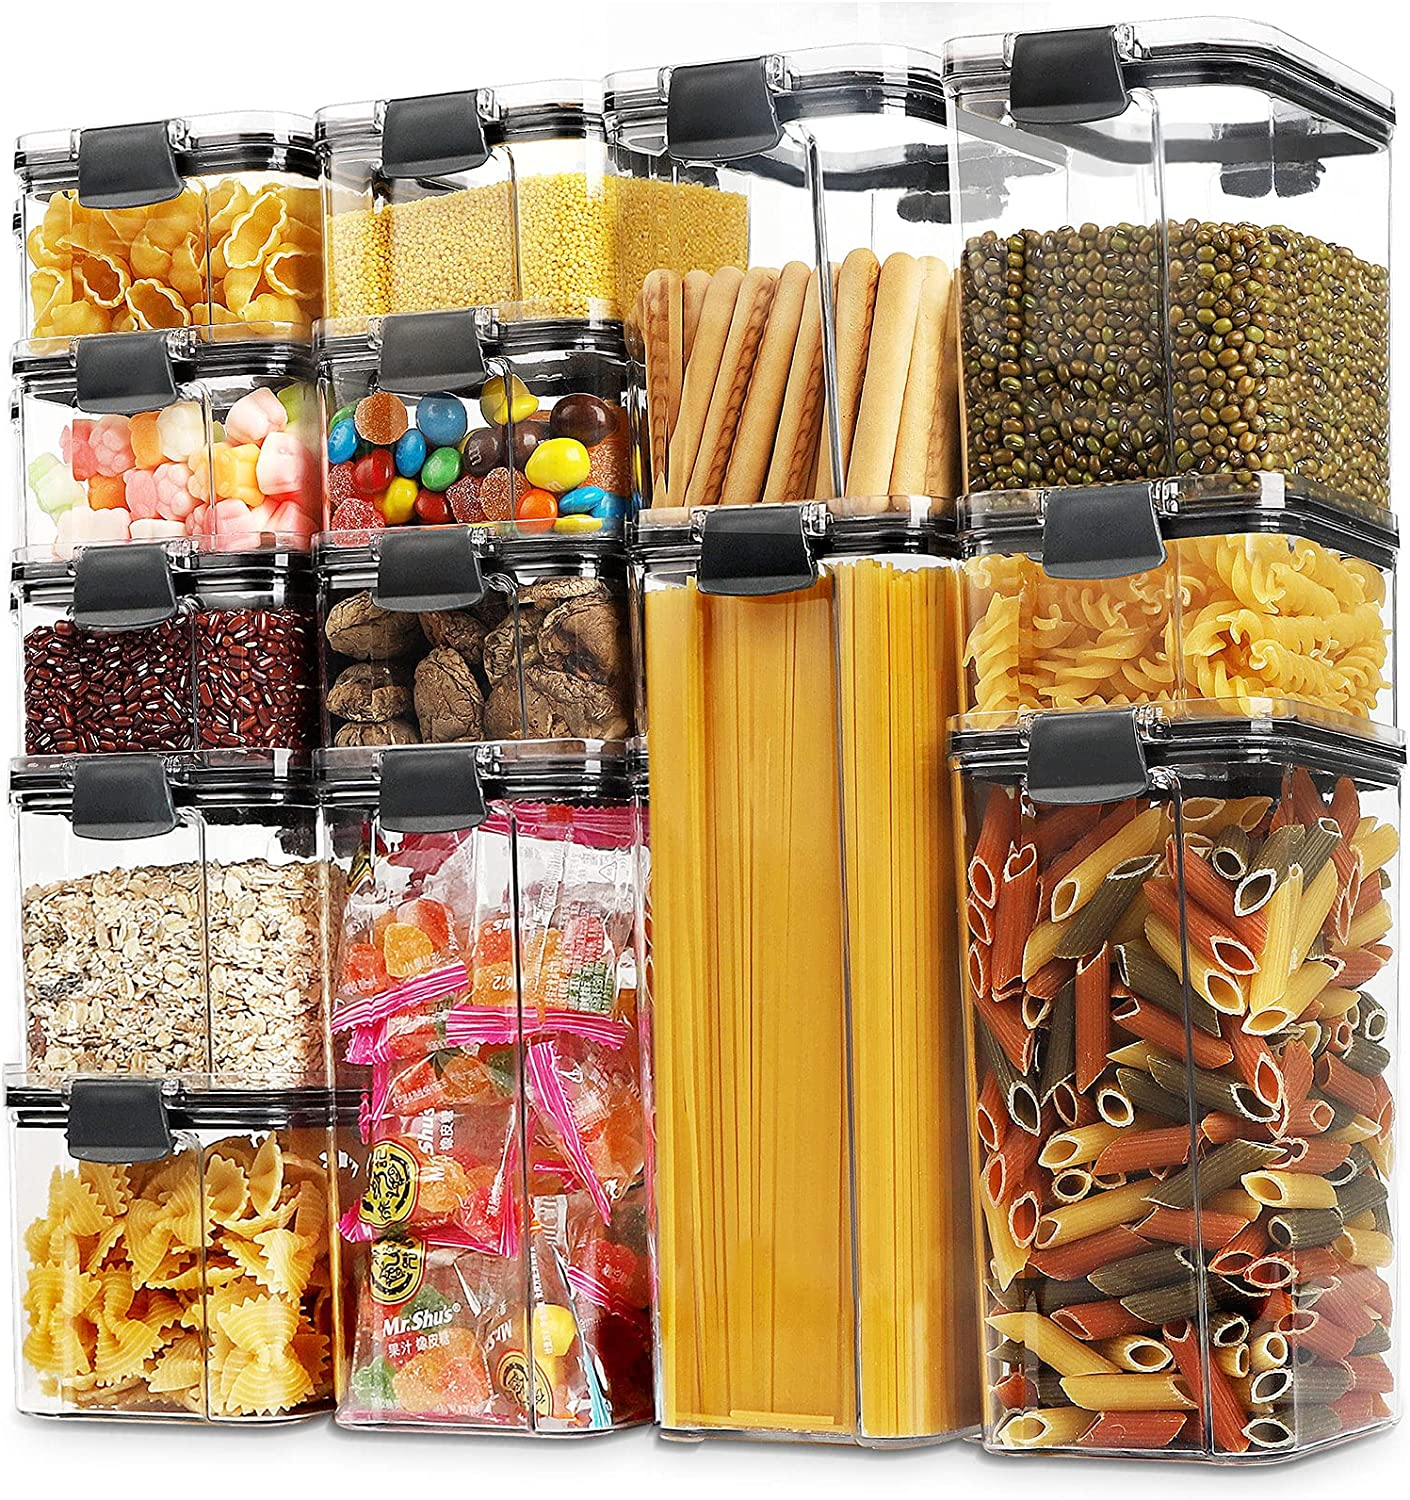 14 Pack Airtight Food Storage Container Set, BPA Free Plastic Cereal Containers with Easy Lock Lids, Kitchen and Pantry Organization Containers